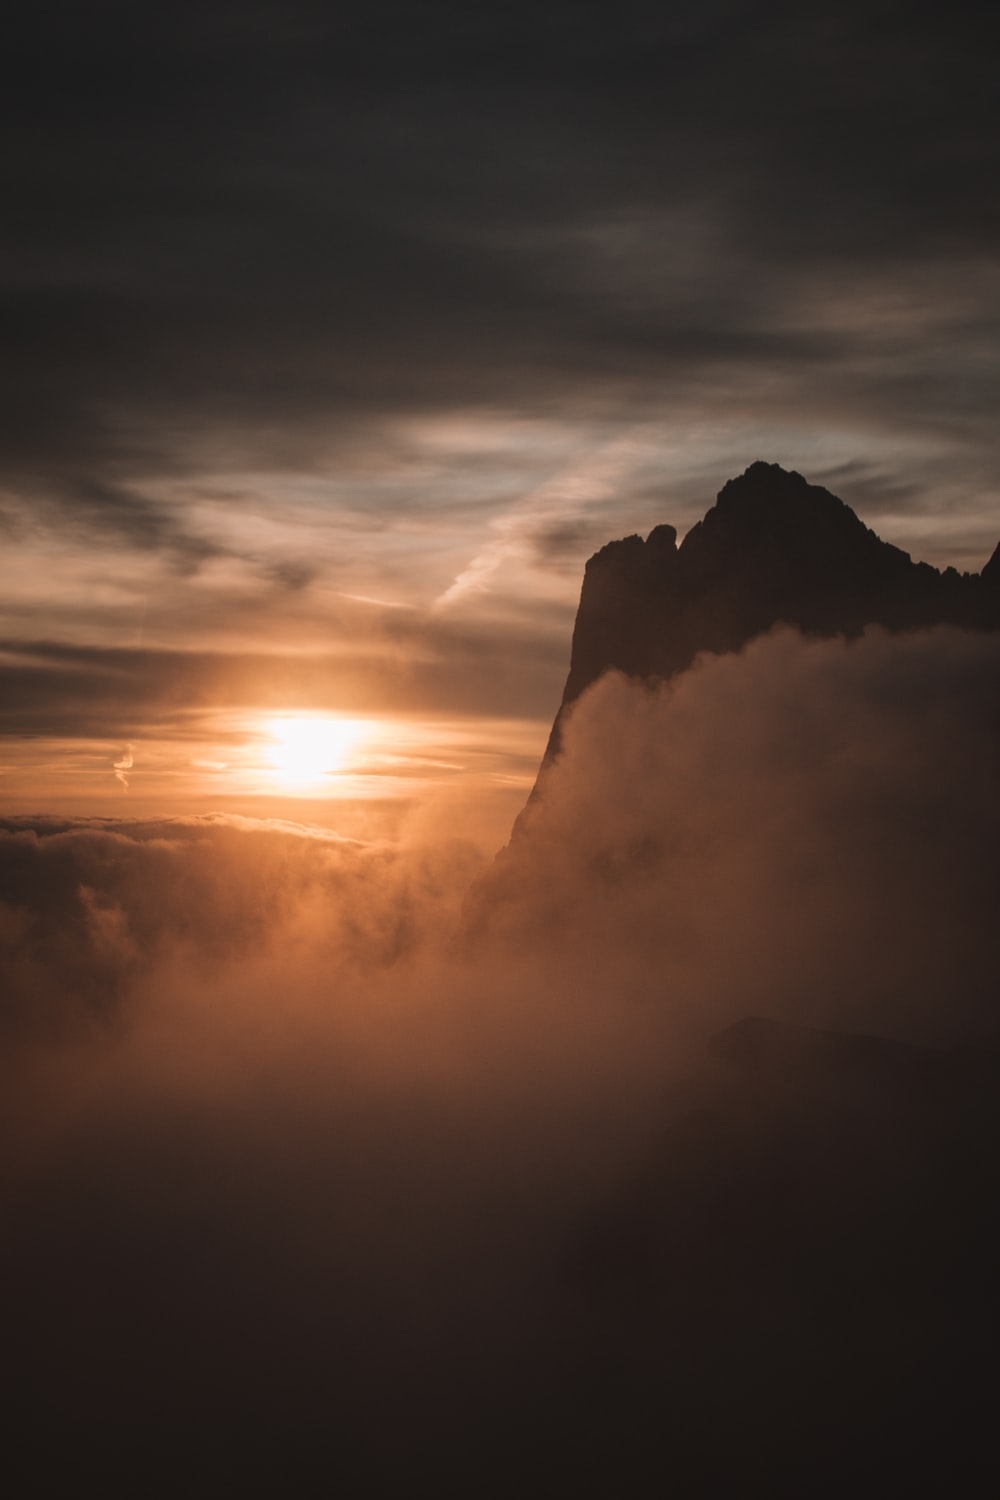 silhouette of mountain under cloudy sky